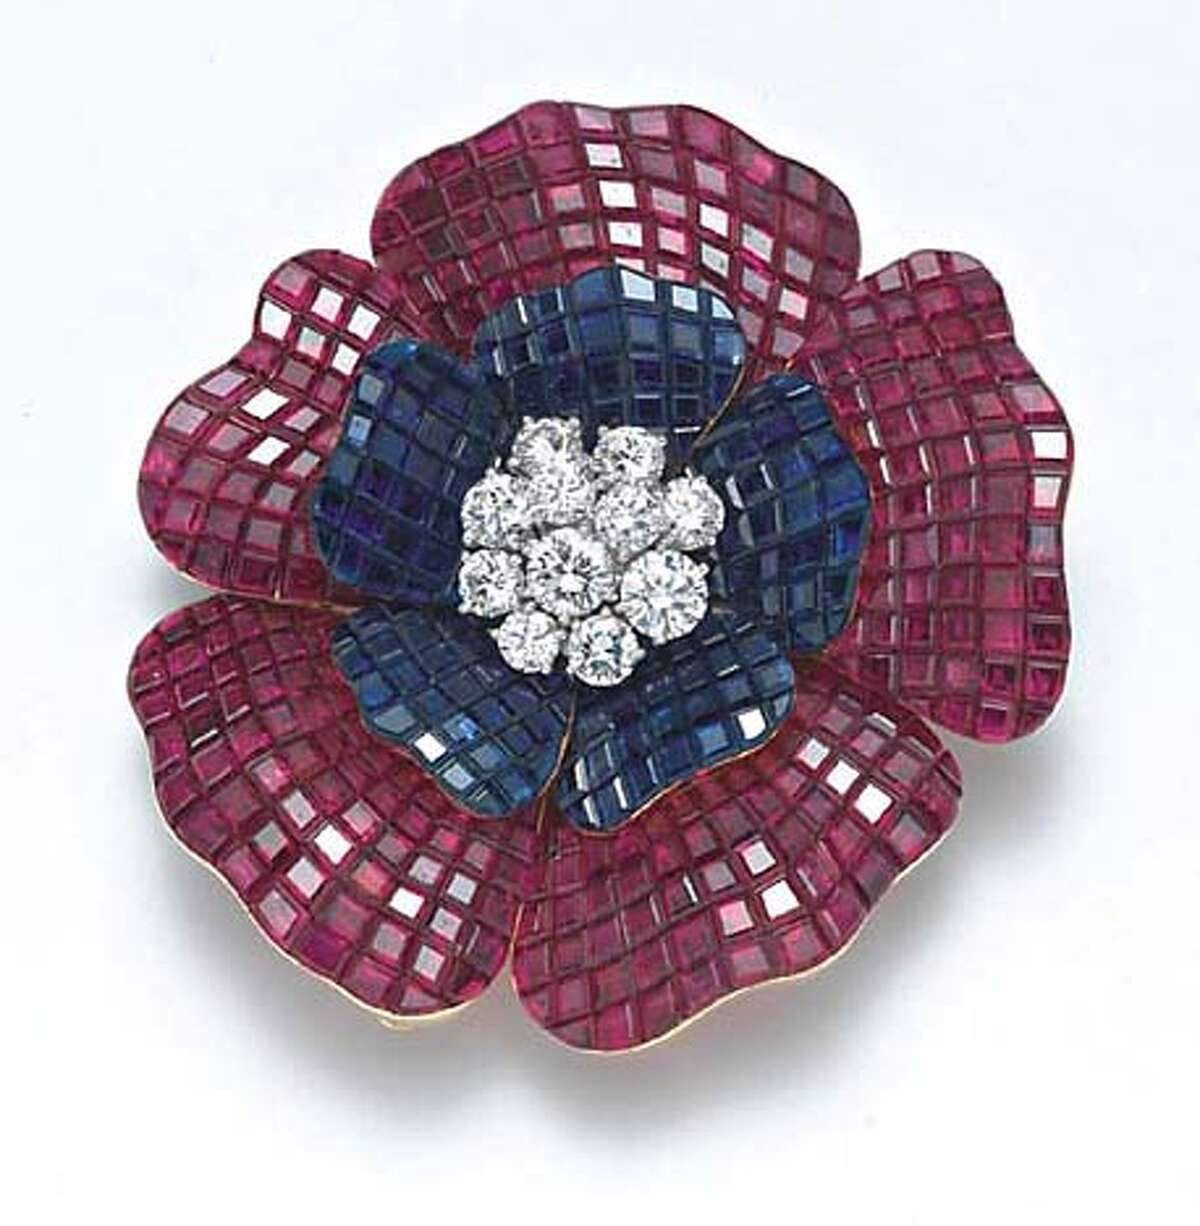 . Flower Brooch, 19l78 Van Cleef & Aprels 18K gold, platinum, rubies, sapphires, diamonds W: 3 cm H: 4 cm Collection of Iris Cantor On view in Masterpieces of French Jewelry Legion of Honor, San Francisco 10 February�10 June 2007